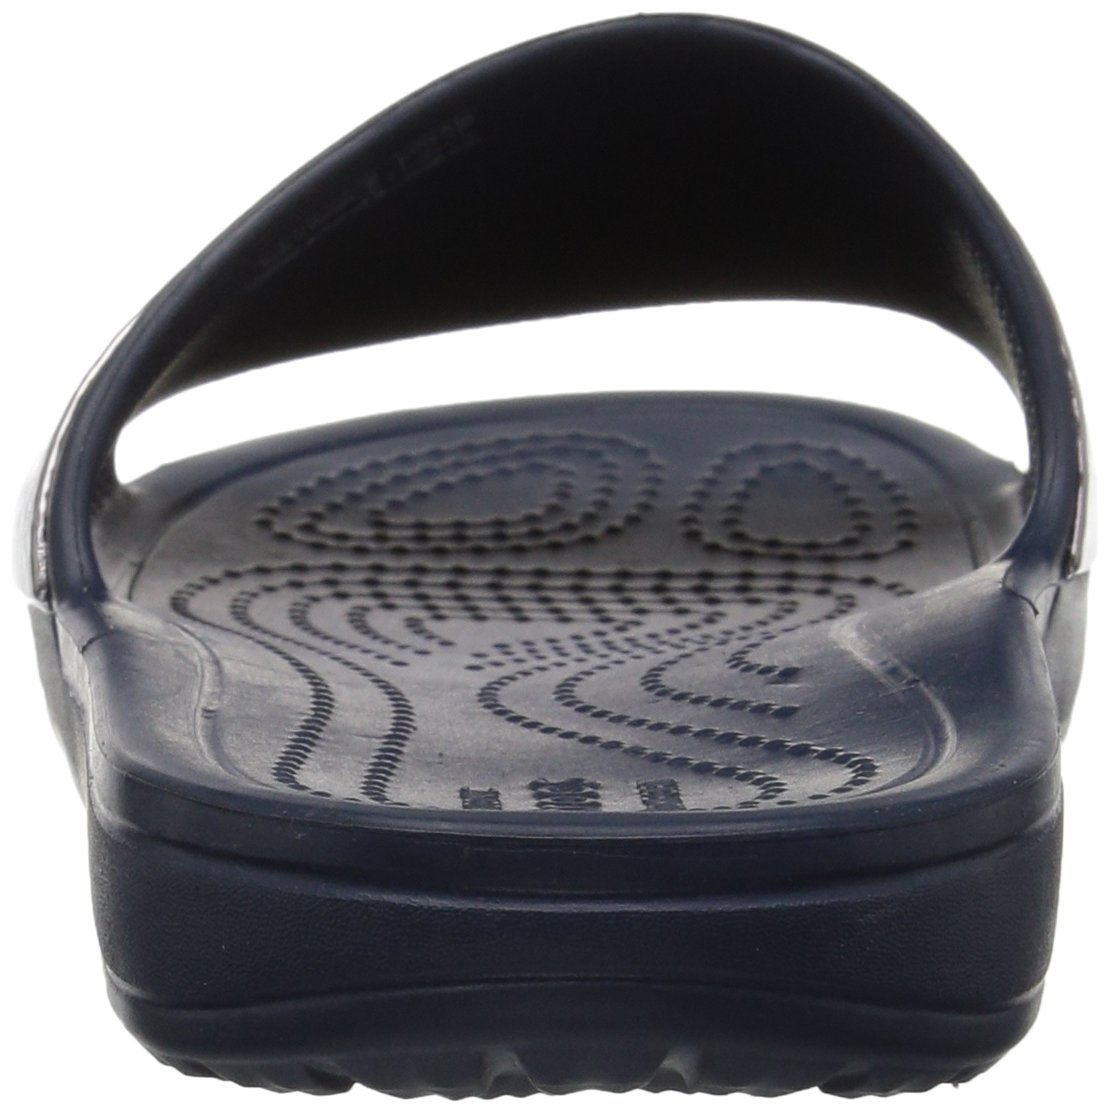 Crocs Women's Sloane Hammered Metallic Slide B0787PGBSV 4 M US|Navy/Navy